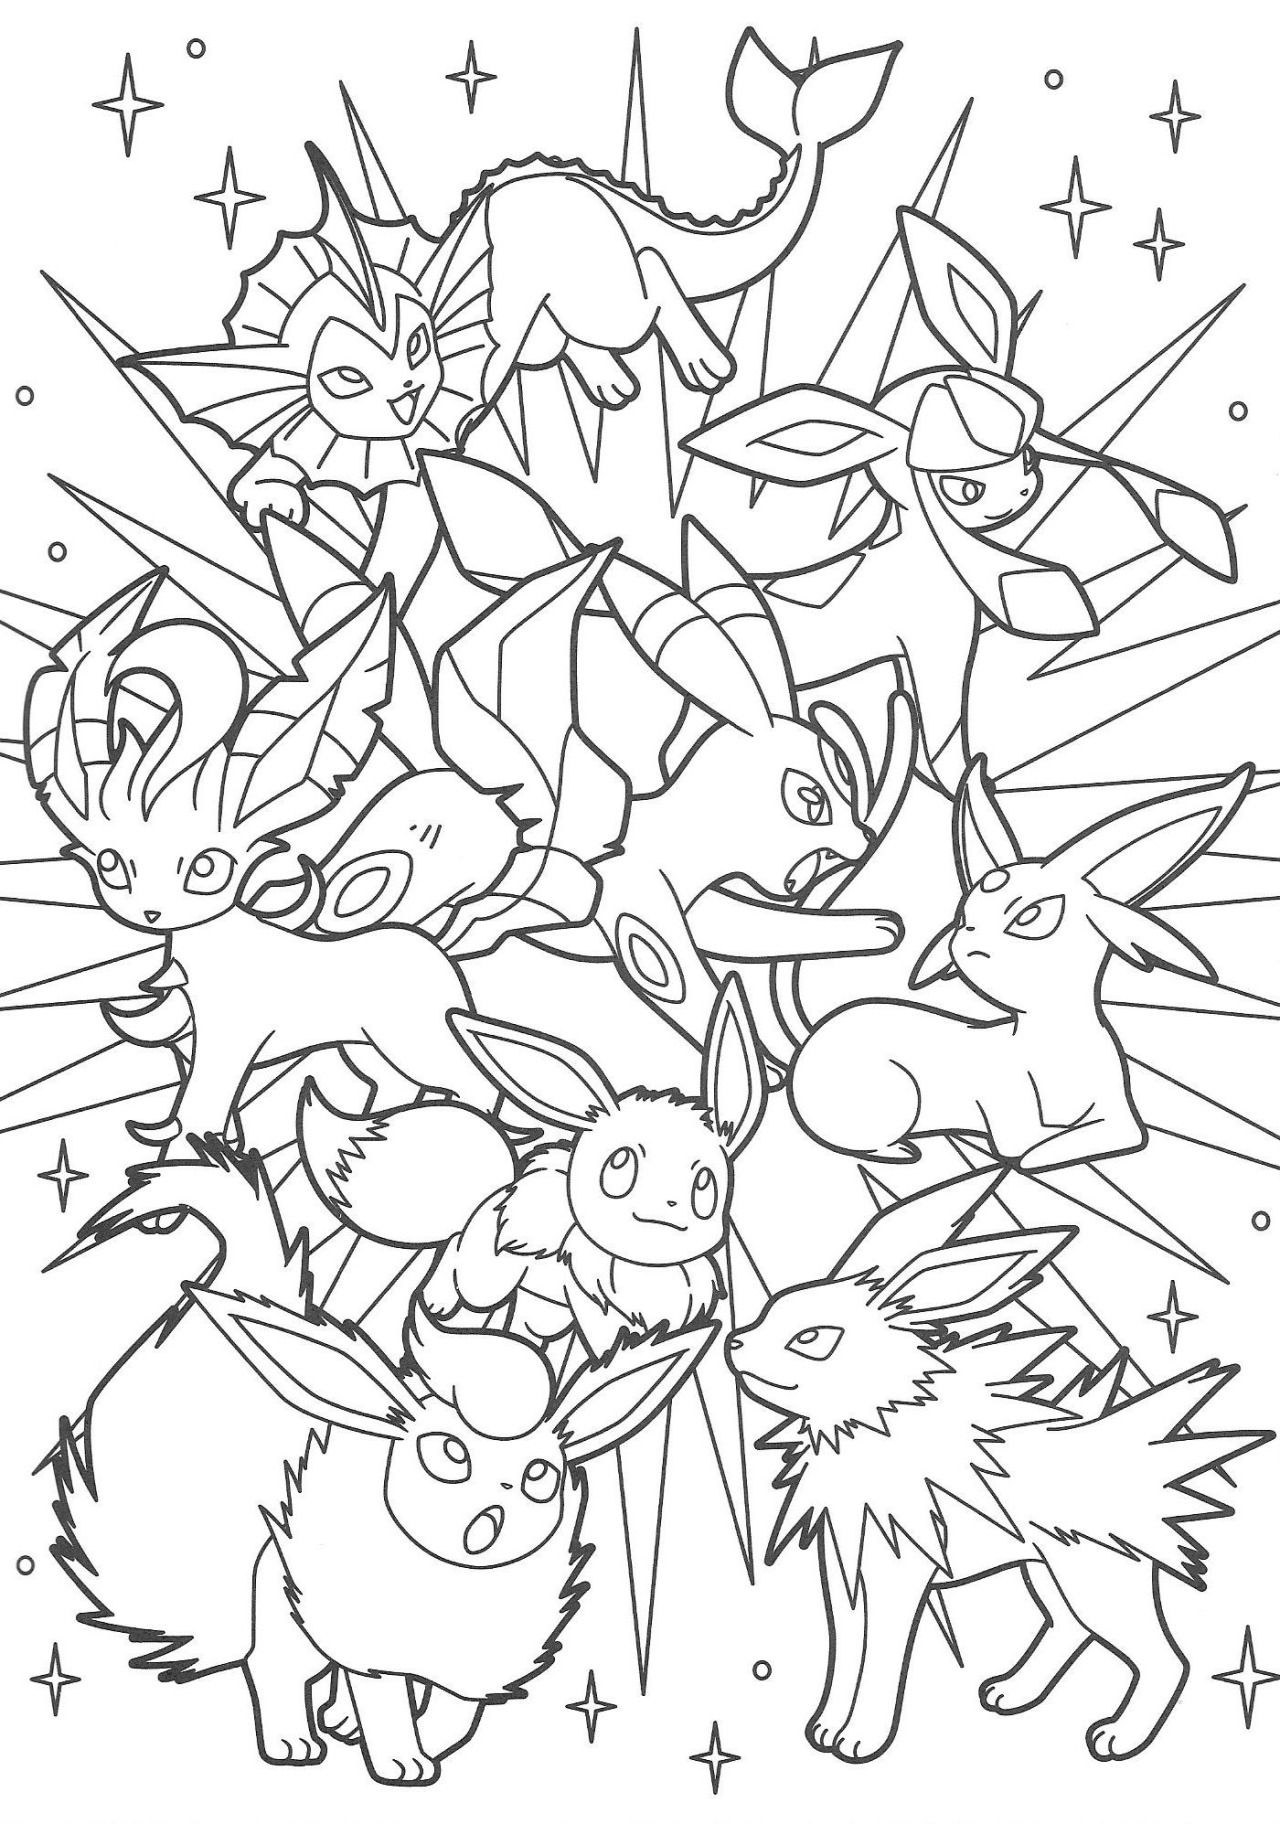 hard pokemon coloring pages 089 muk pokemon coloring page hard pokemon color pages hard coloring pages pokemon